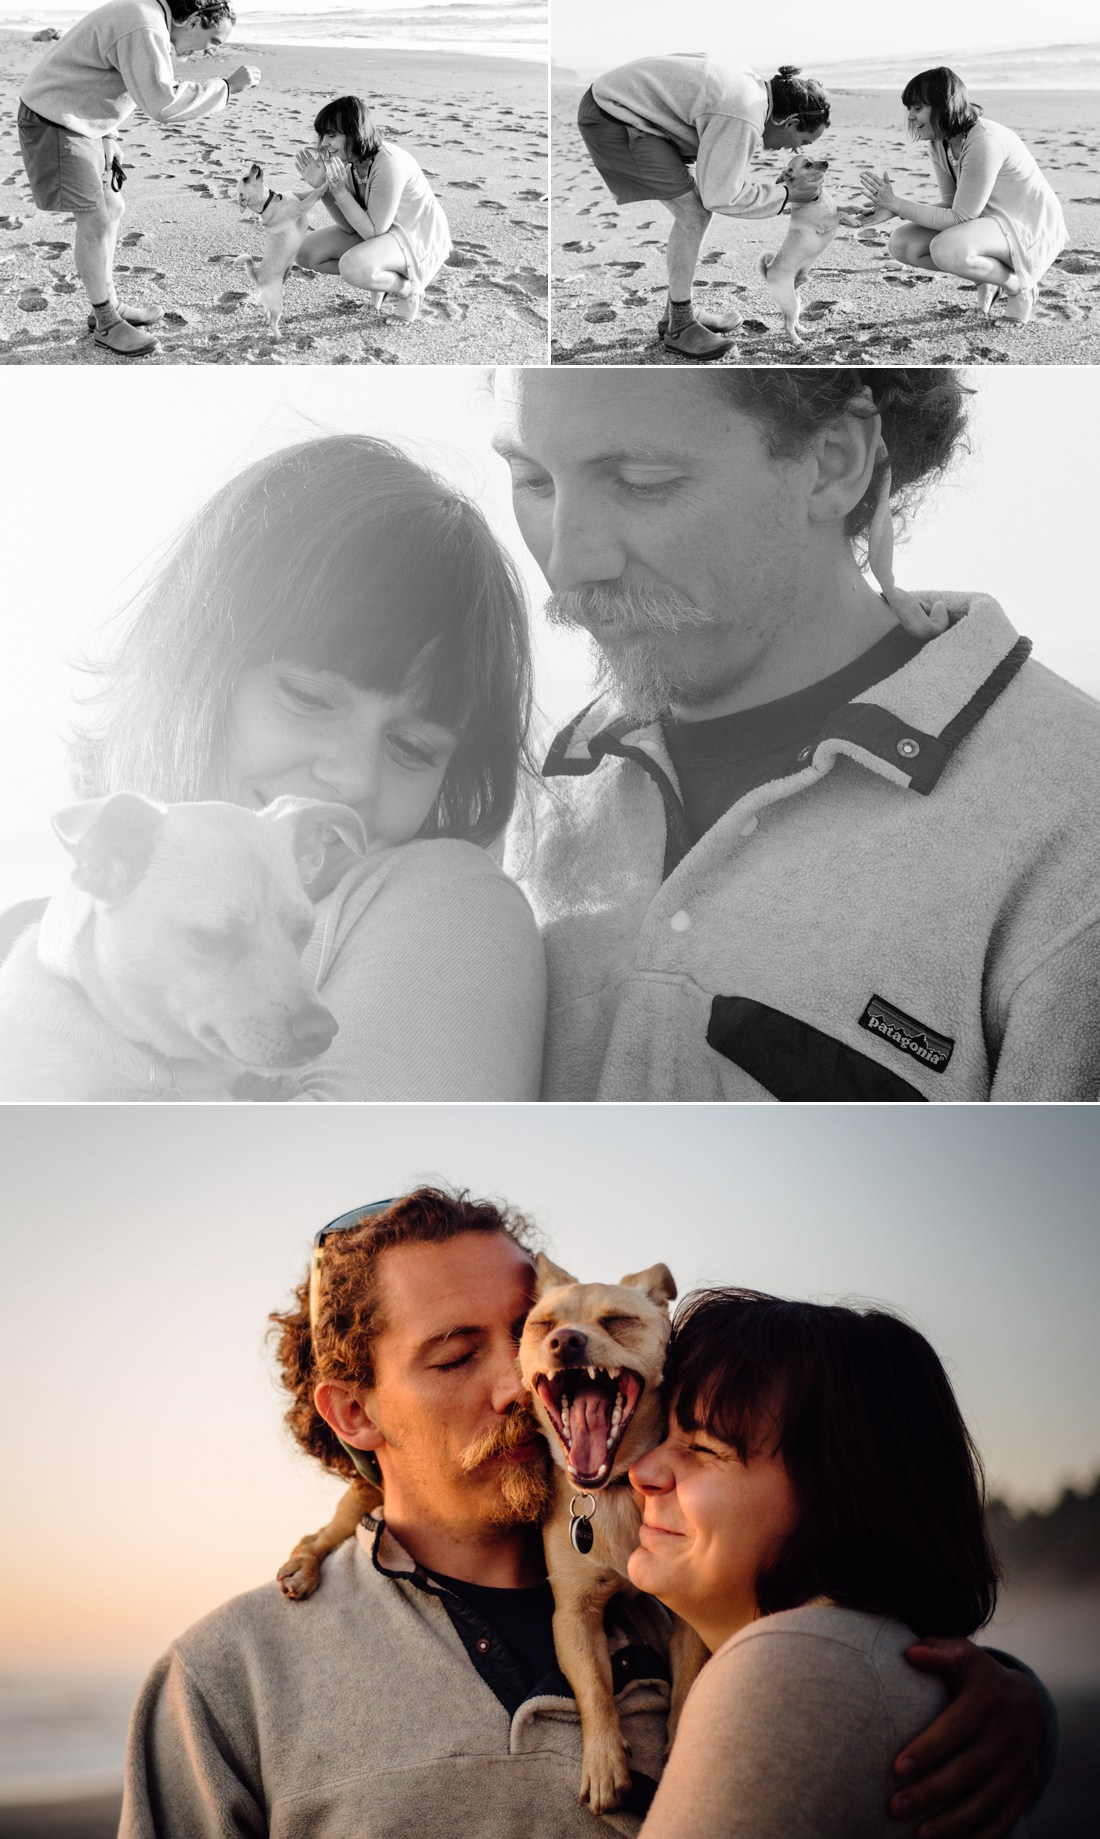 Laid back Trinidad beach engagement session in Dry Creek - complete with adorable dog. Photographed by Humboldt County Wedding Photographer Kate Donaldson Photography